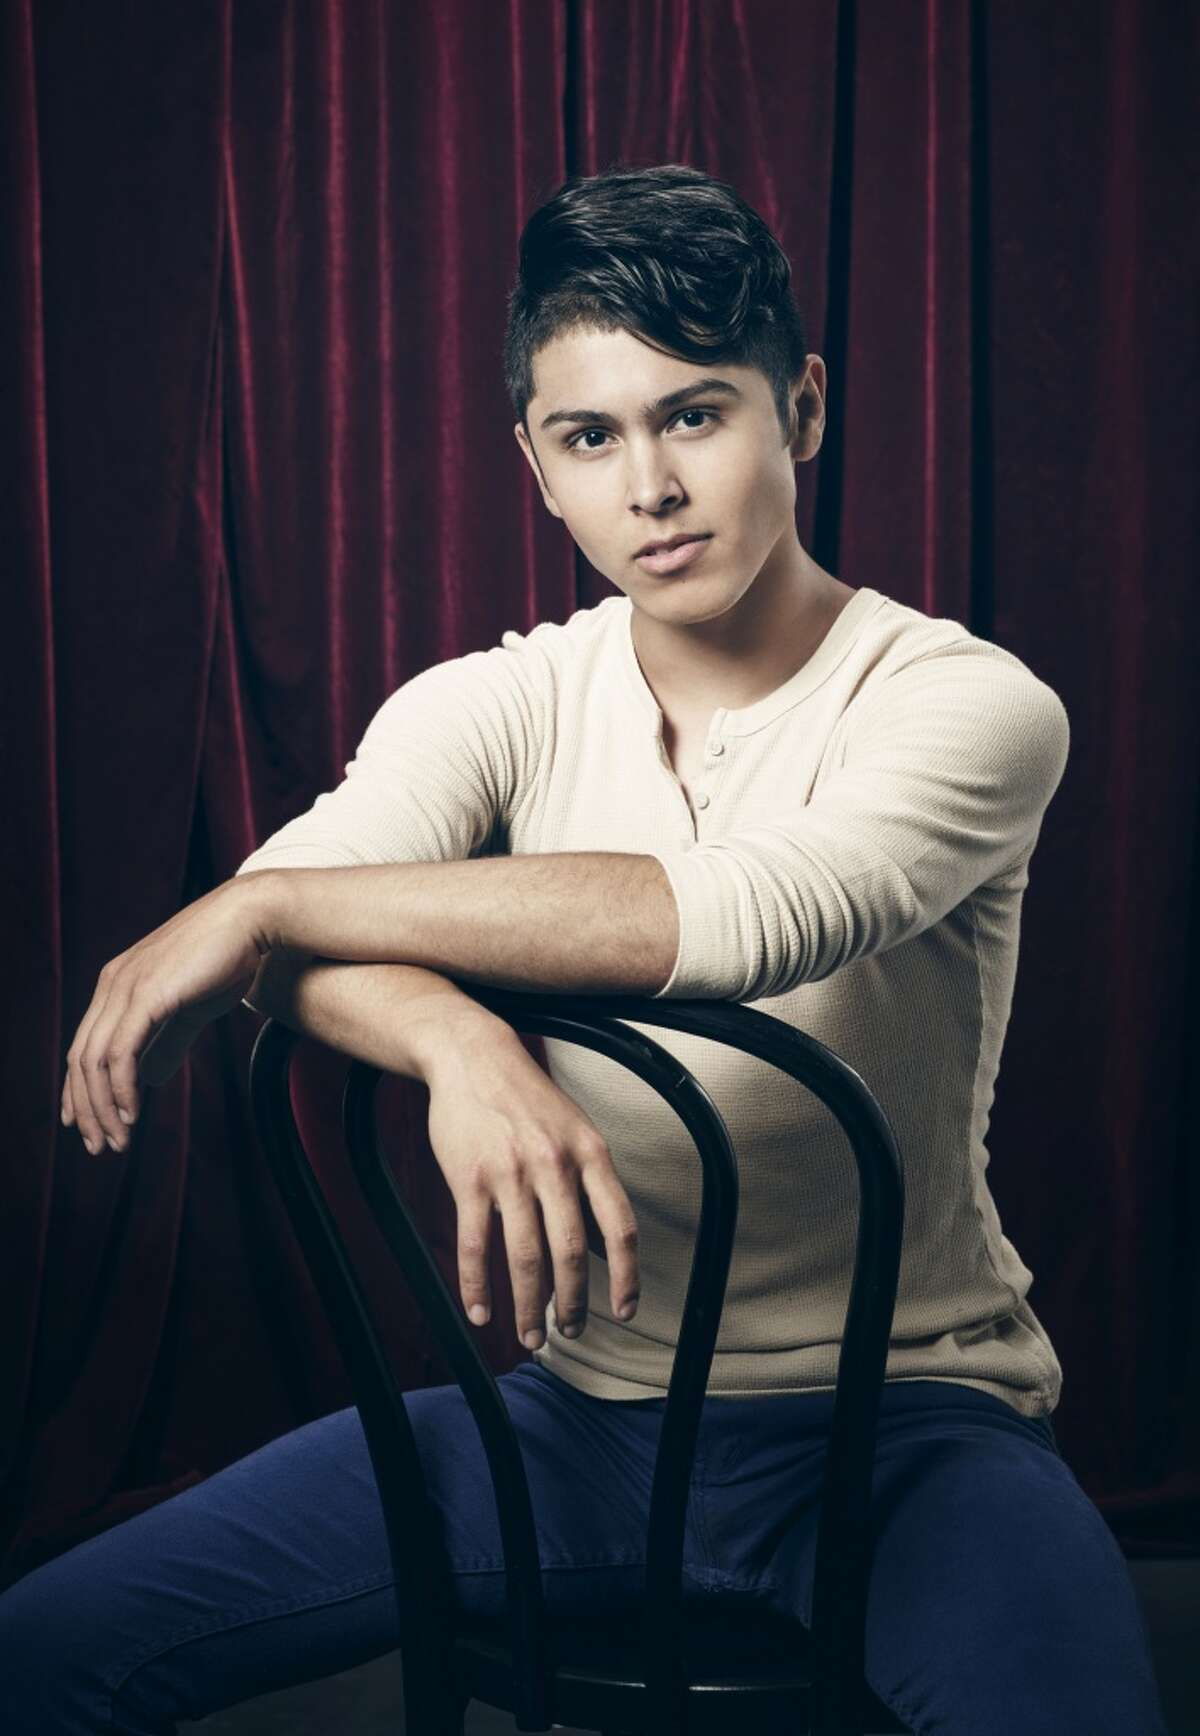 Top 20 contestant Moises Parra (18) is a part of Team Stage on SO YOU THINK YOU CAN DANCE